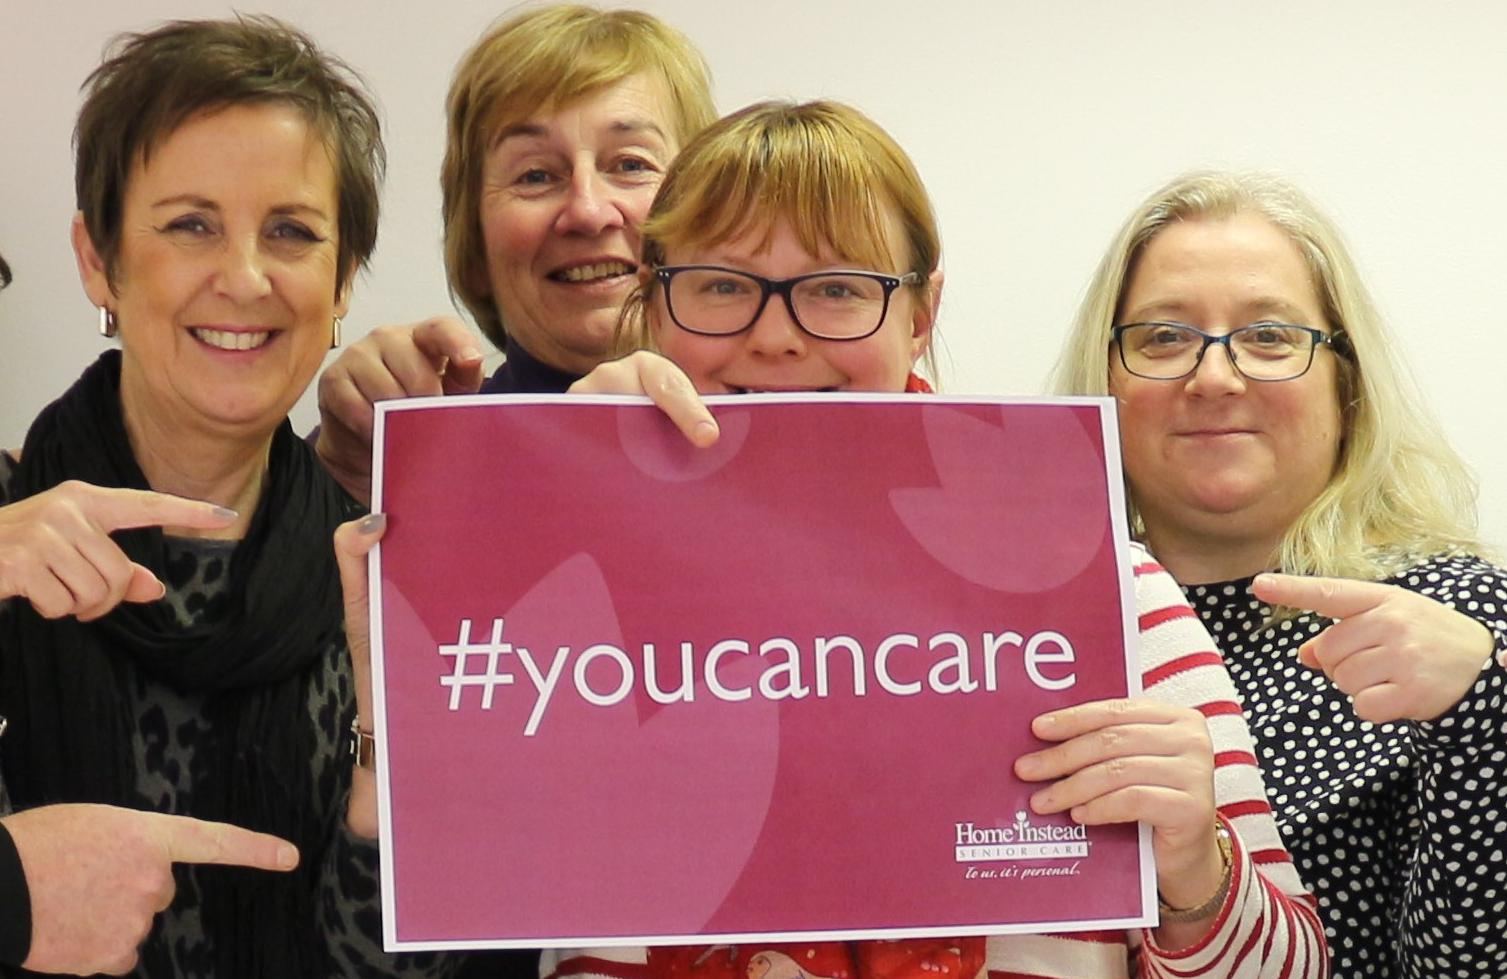 Care boss says 'You Can Care'